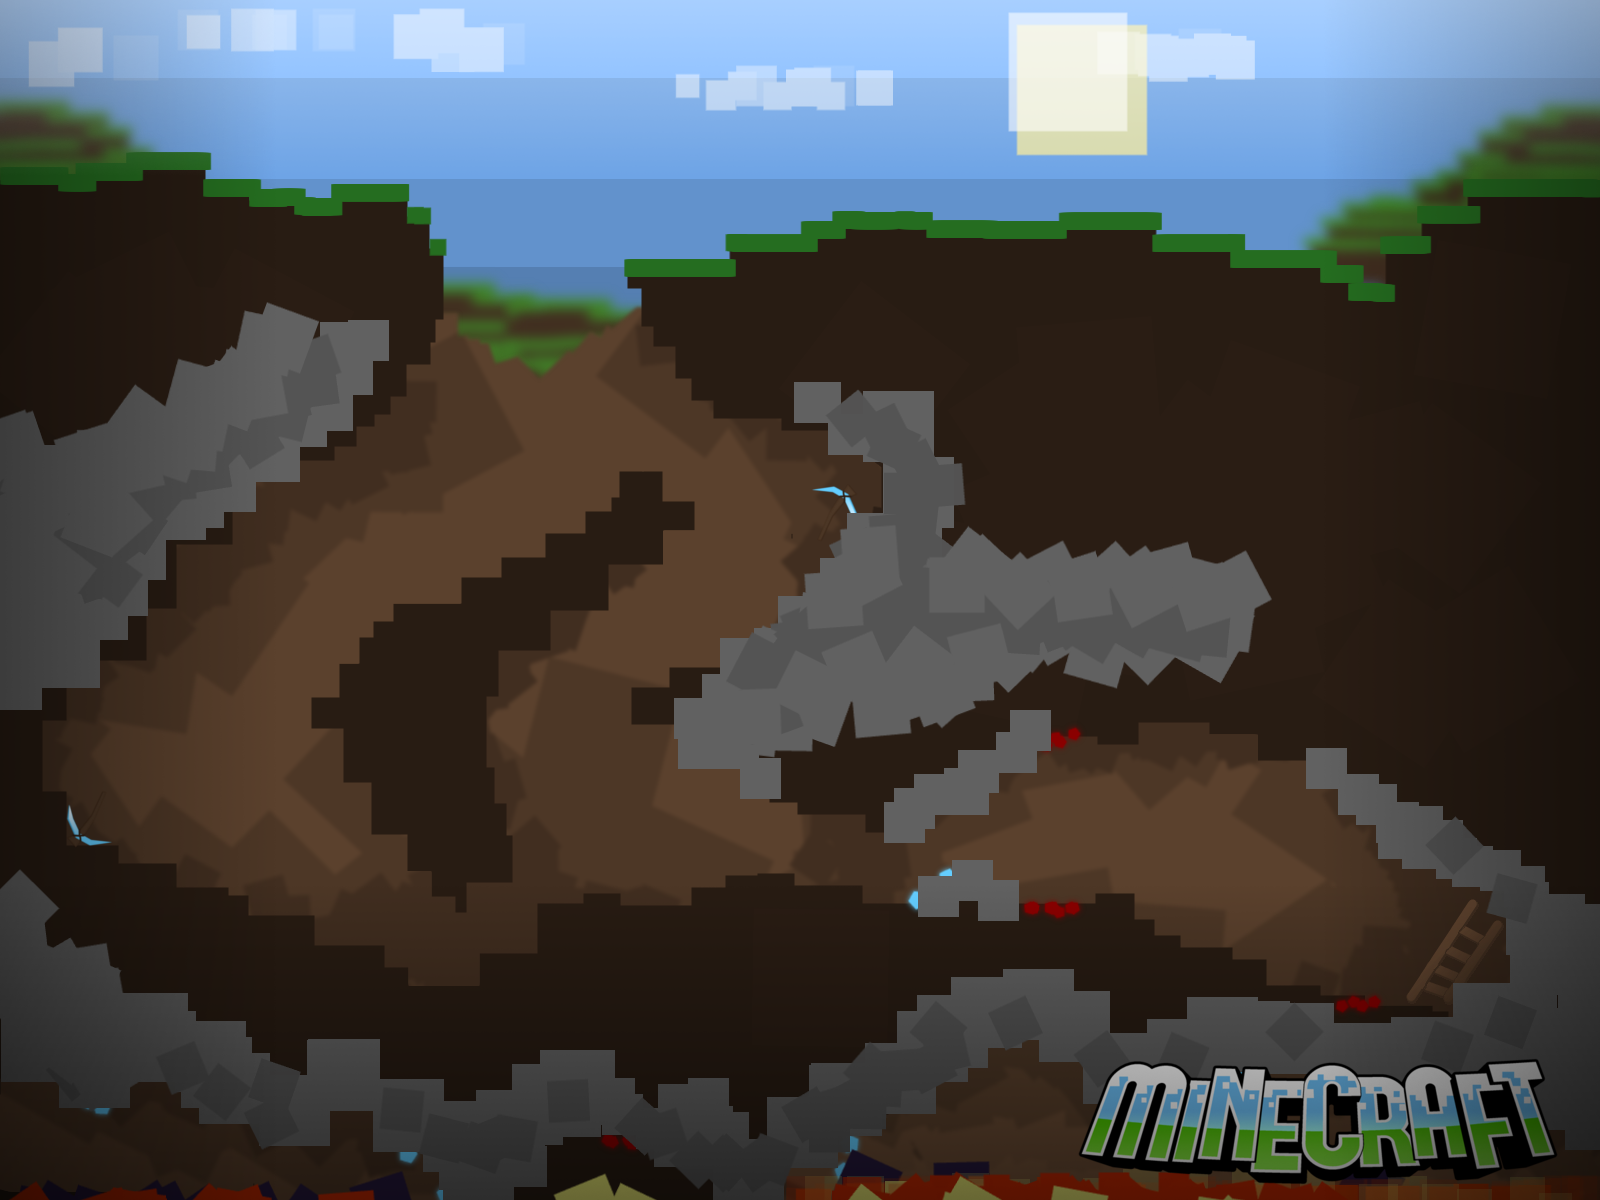 Must see Wallpaper Minecraft Abstract - minecraft_wallpaper_by_troopek94-d5p41bq  Trends_3216100.png